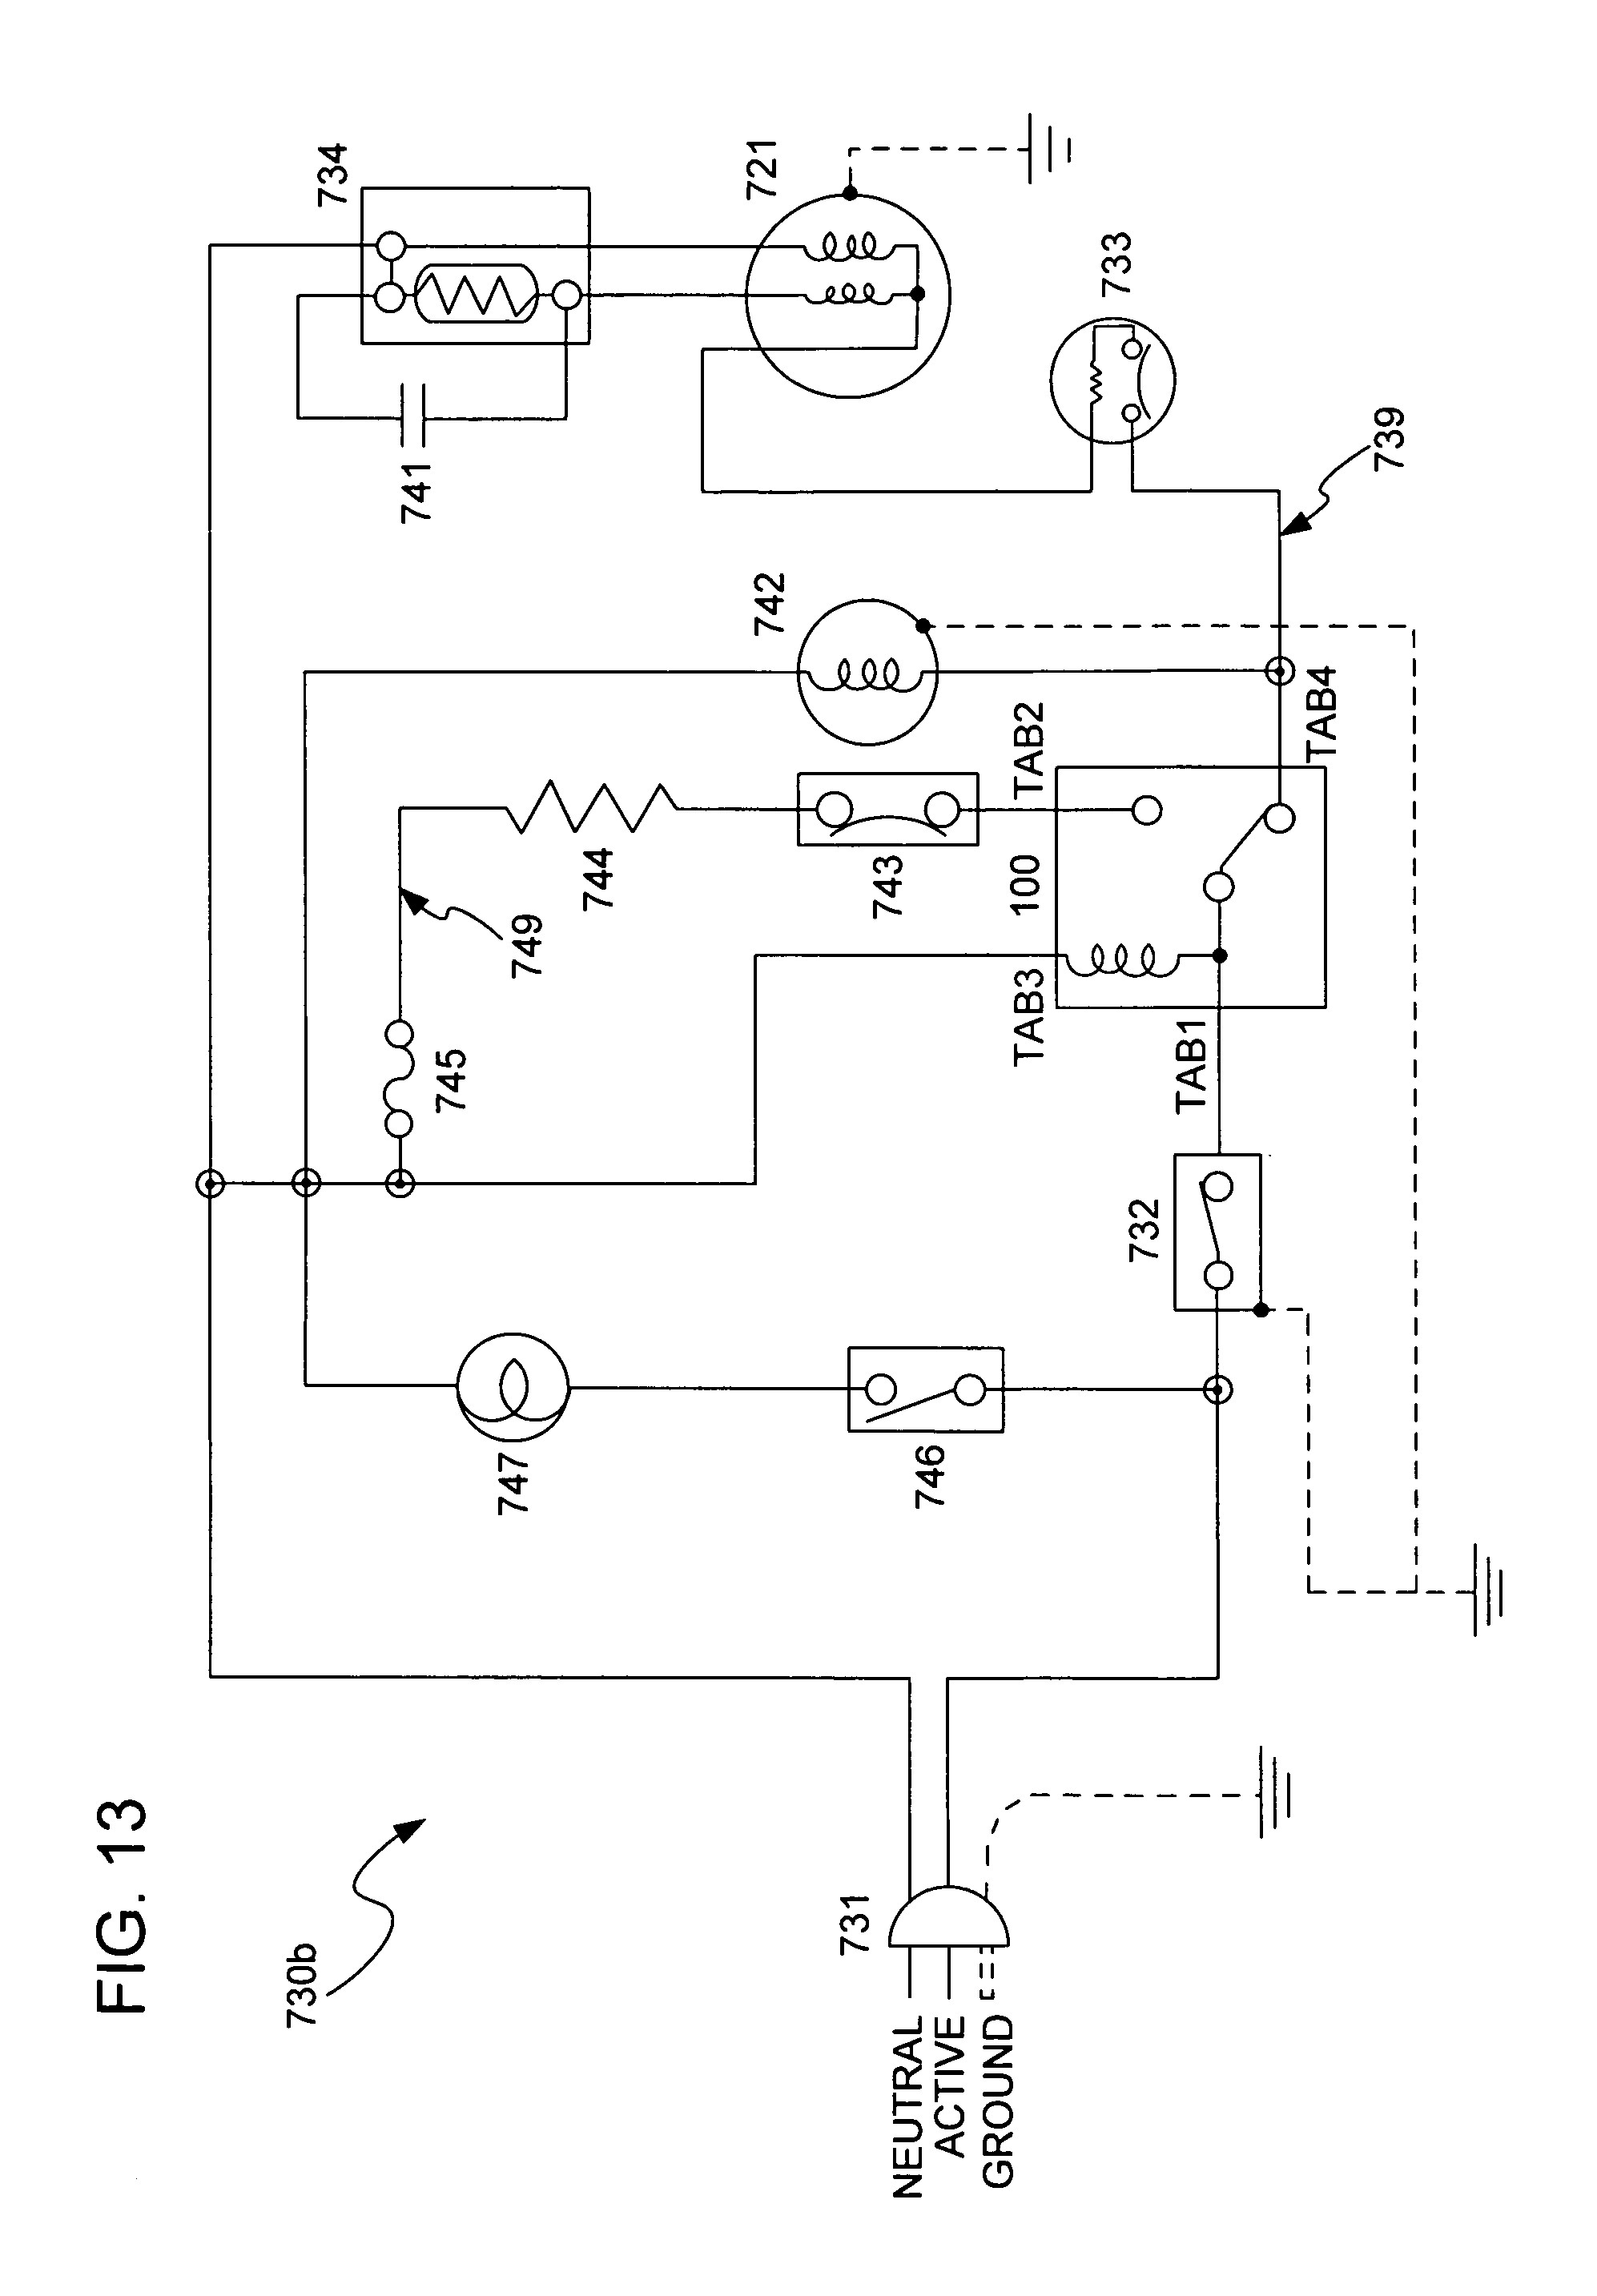 hight resolution of paragon timer wiring diagram wiring library paragon 8141 00 wiring diagram download paragon time clock wiring